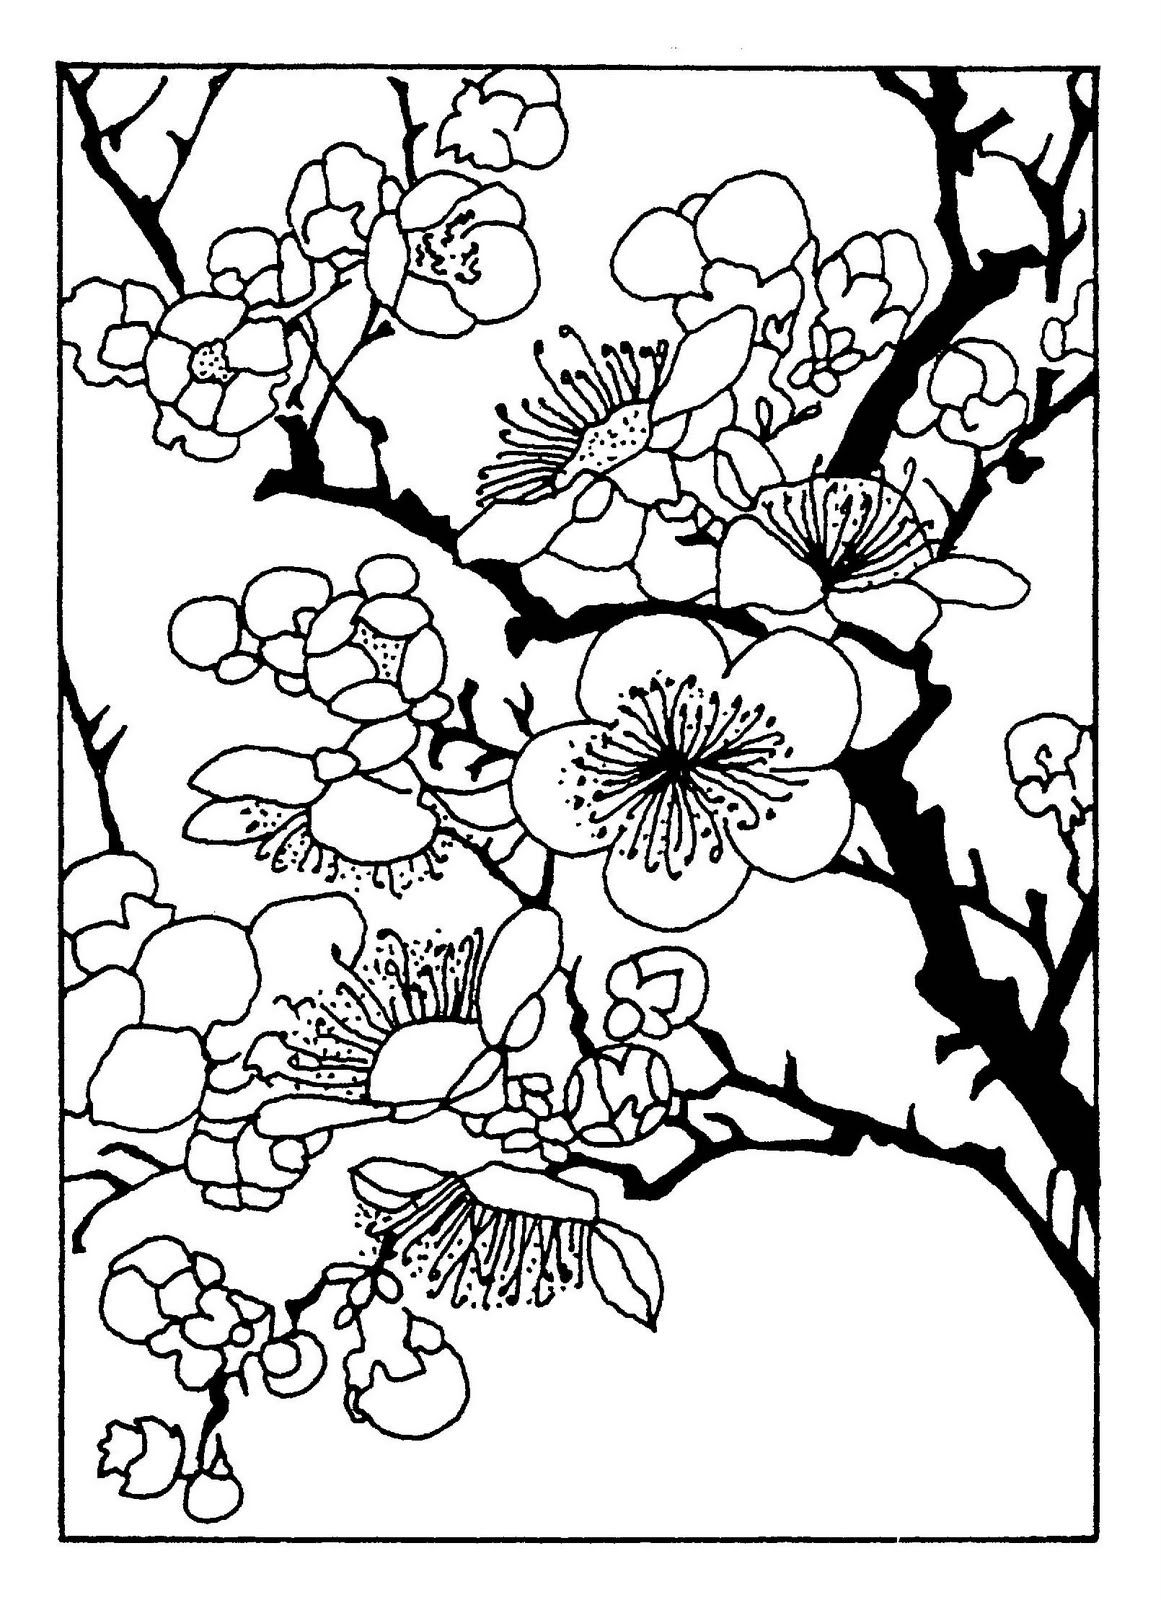 cherry blossom coloring pages cherry blossom floral coloring page stock illustration cherry pages coloring blossom